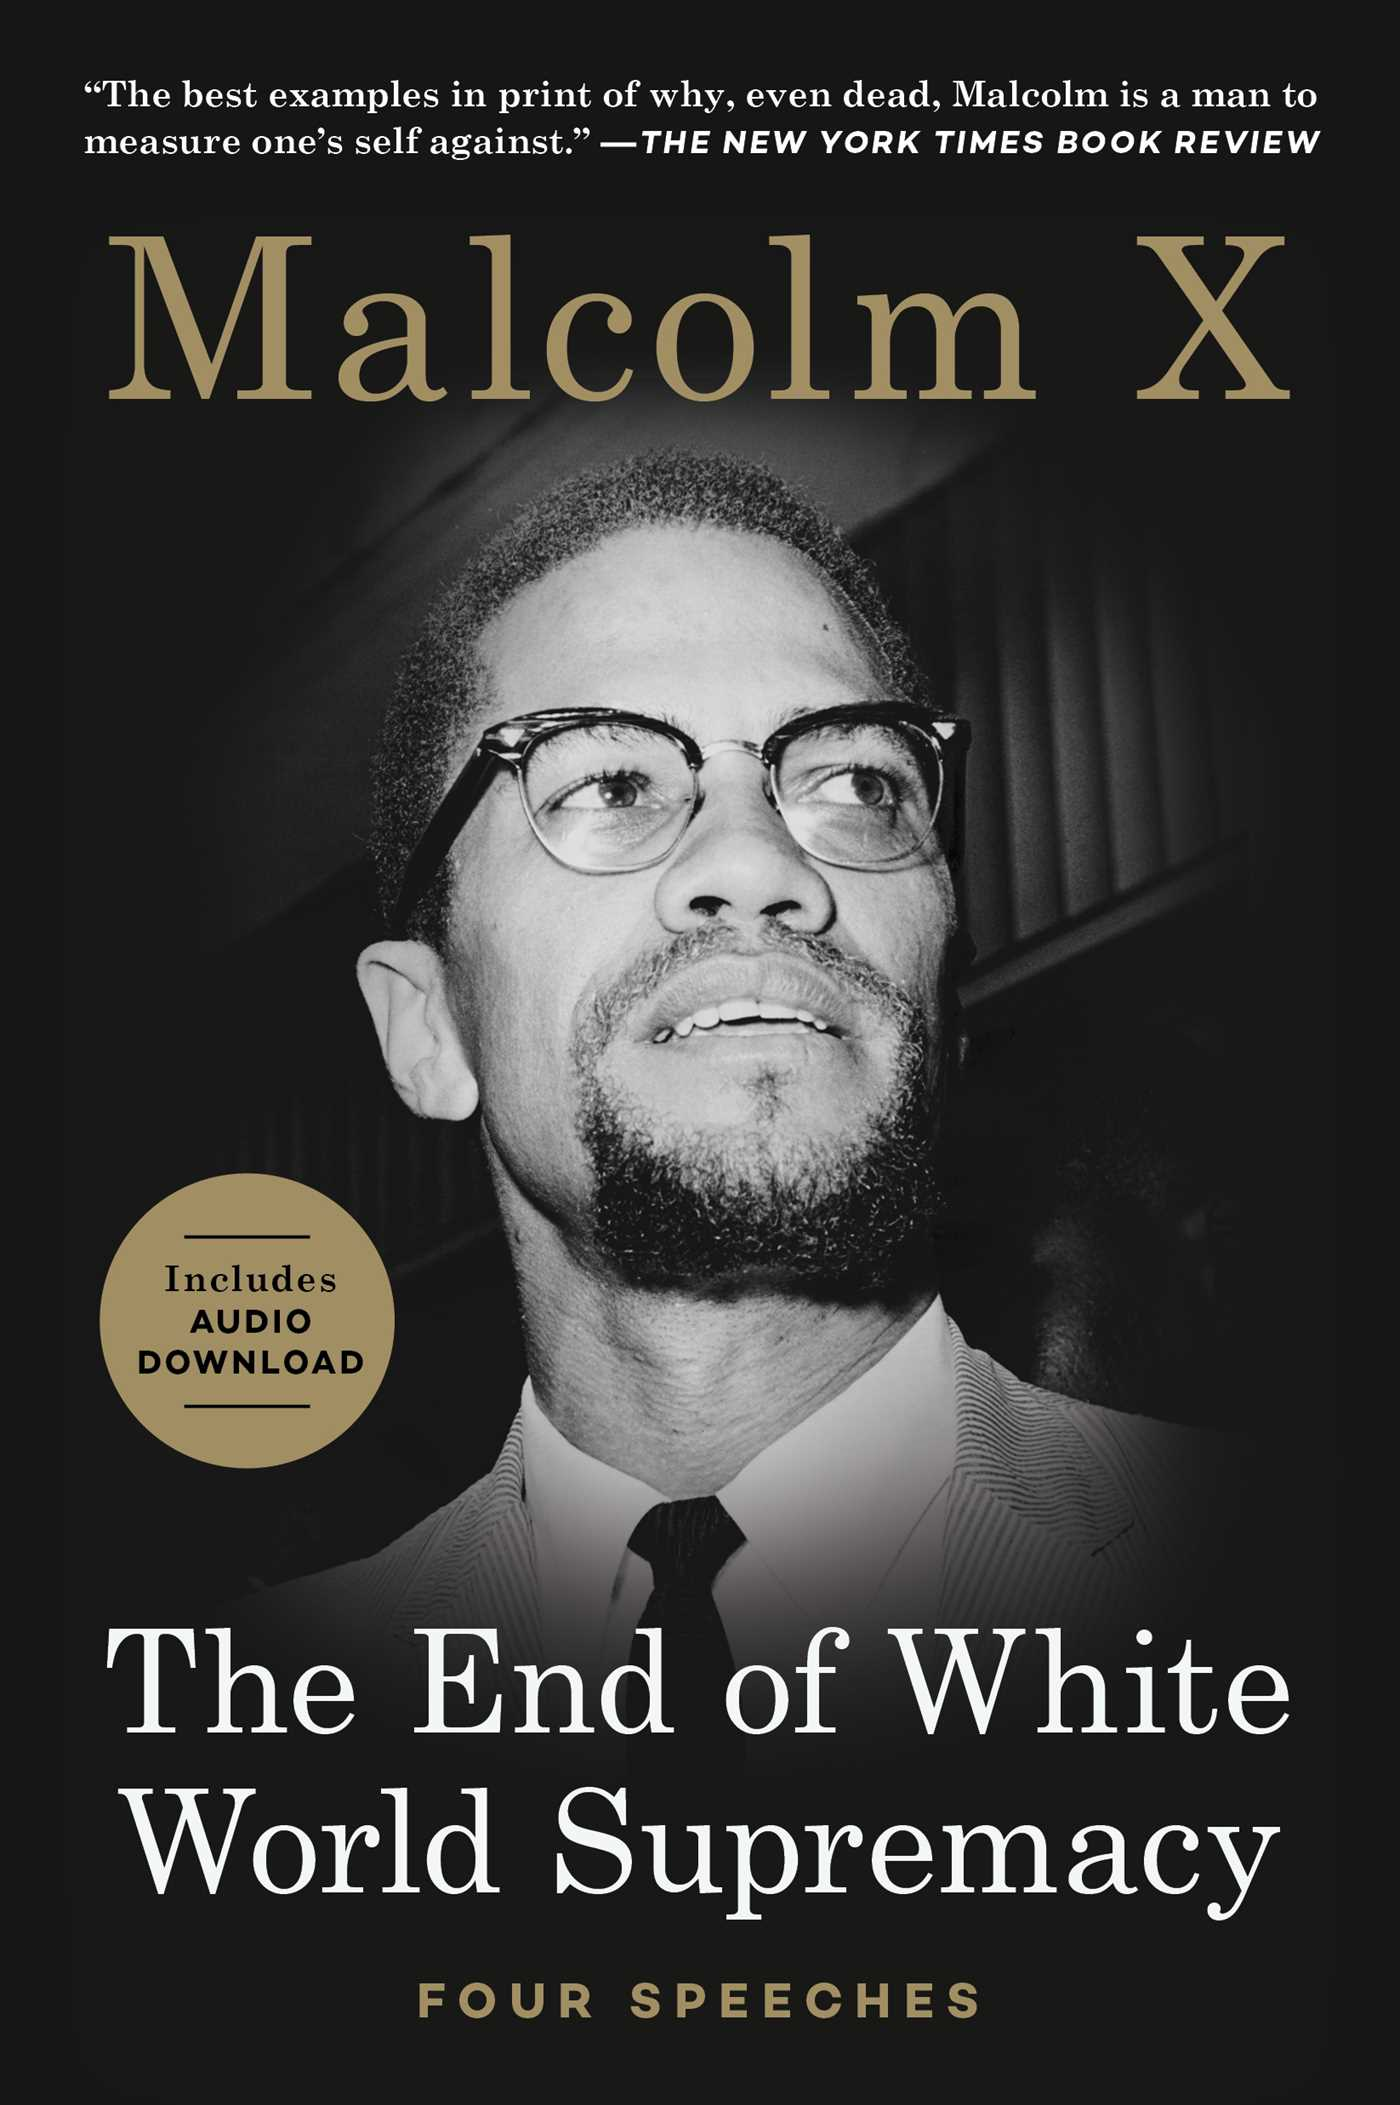 """the end of white america by hua hsu essay The end of white america commentary archives, 4 mar 2009  hua hsu the election of barack obama is just the most startling manifestation of a larger trend: the gradual erosion of """"whiteness"""" as the touchstone of what it means to be american."""